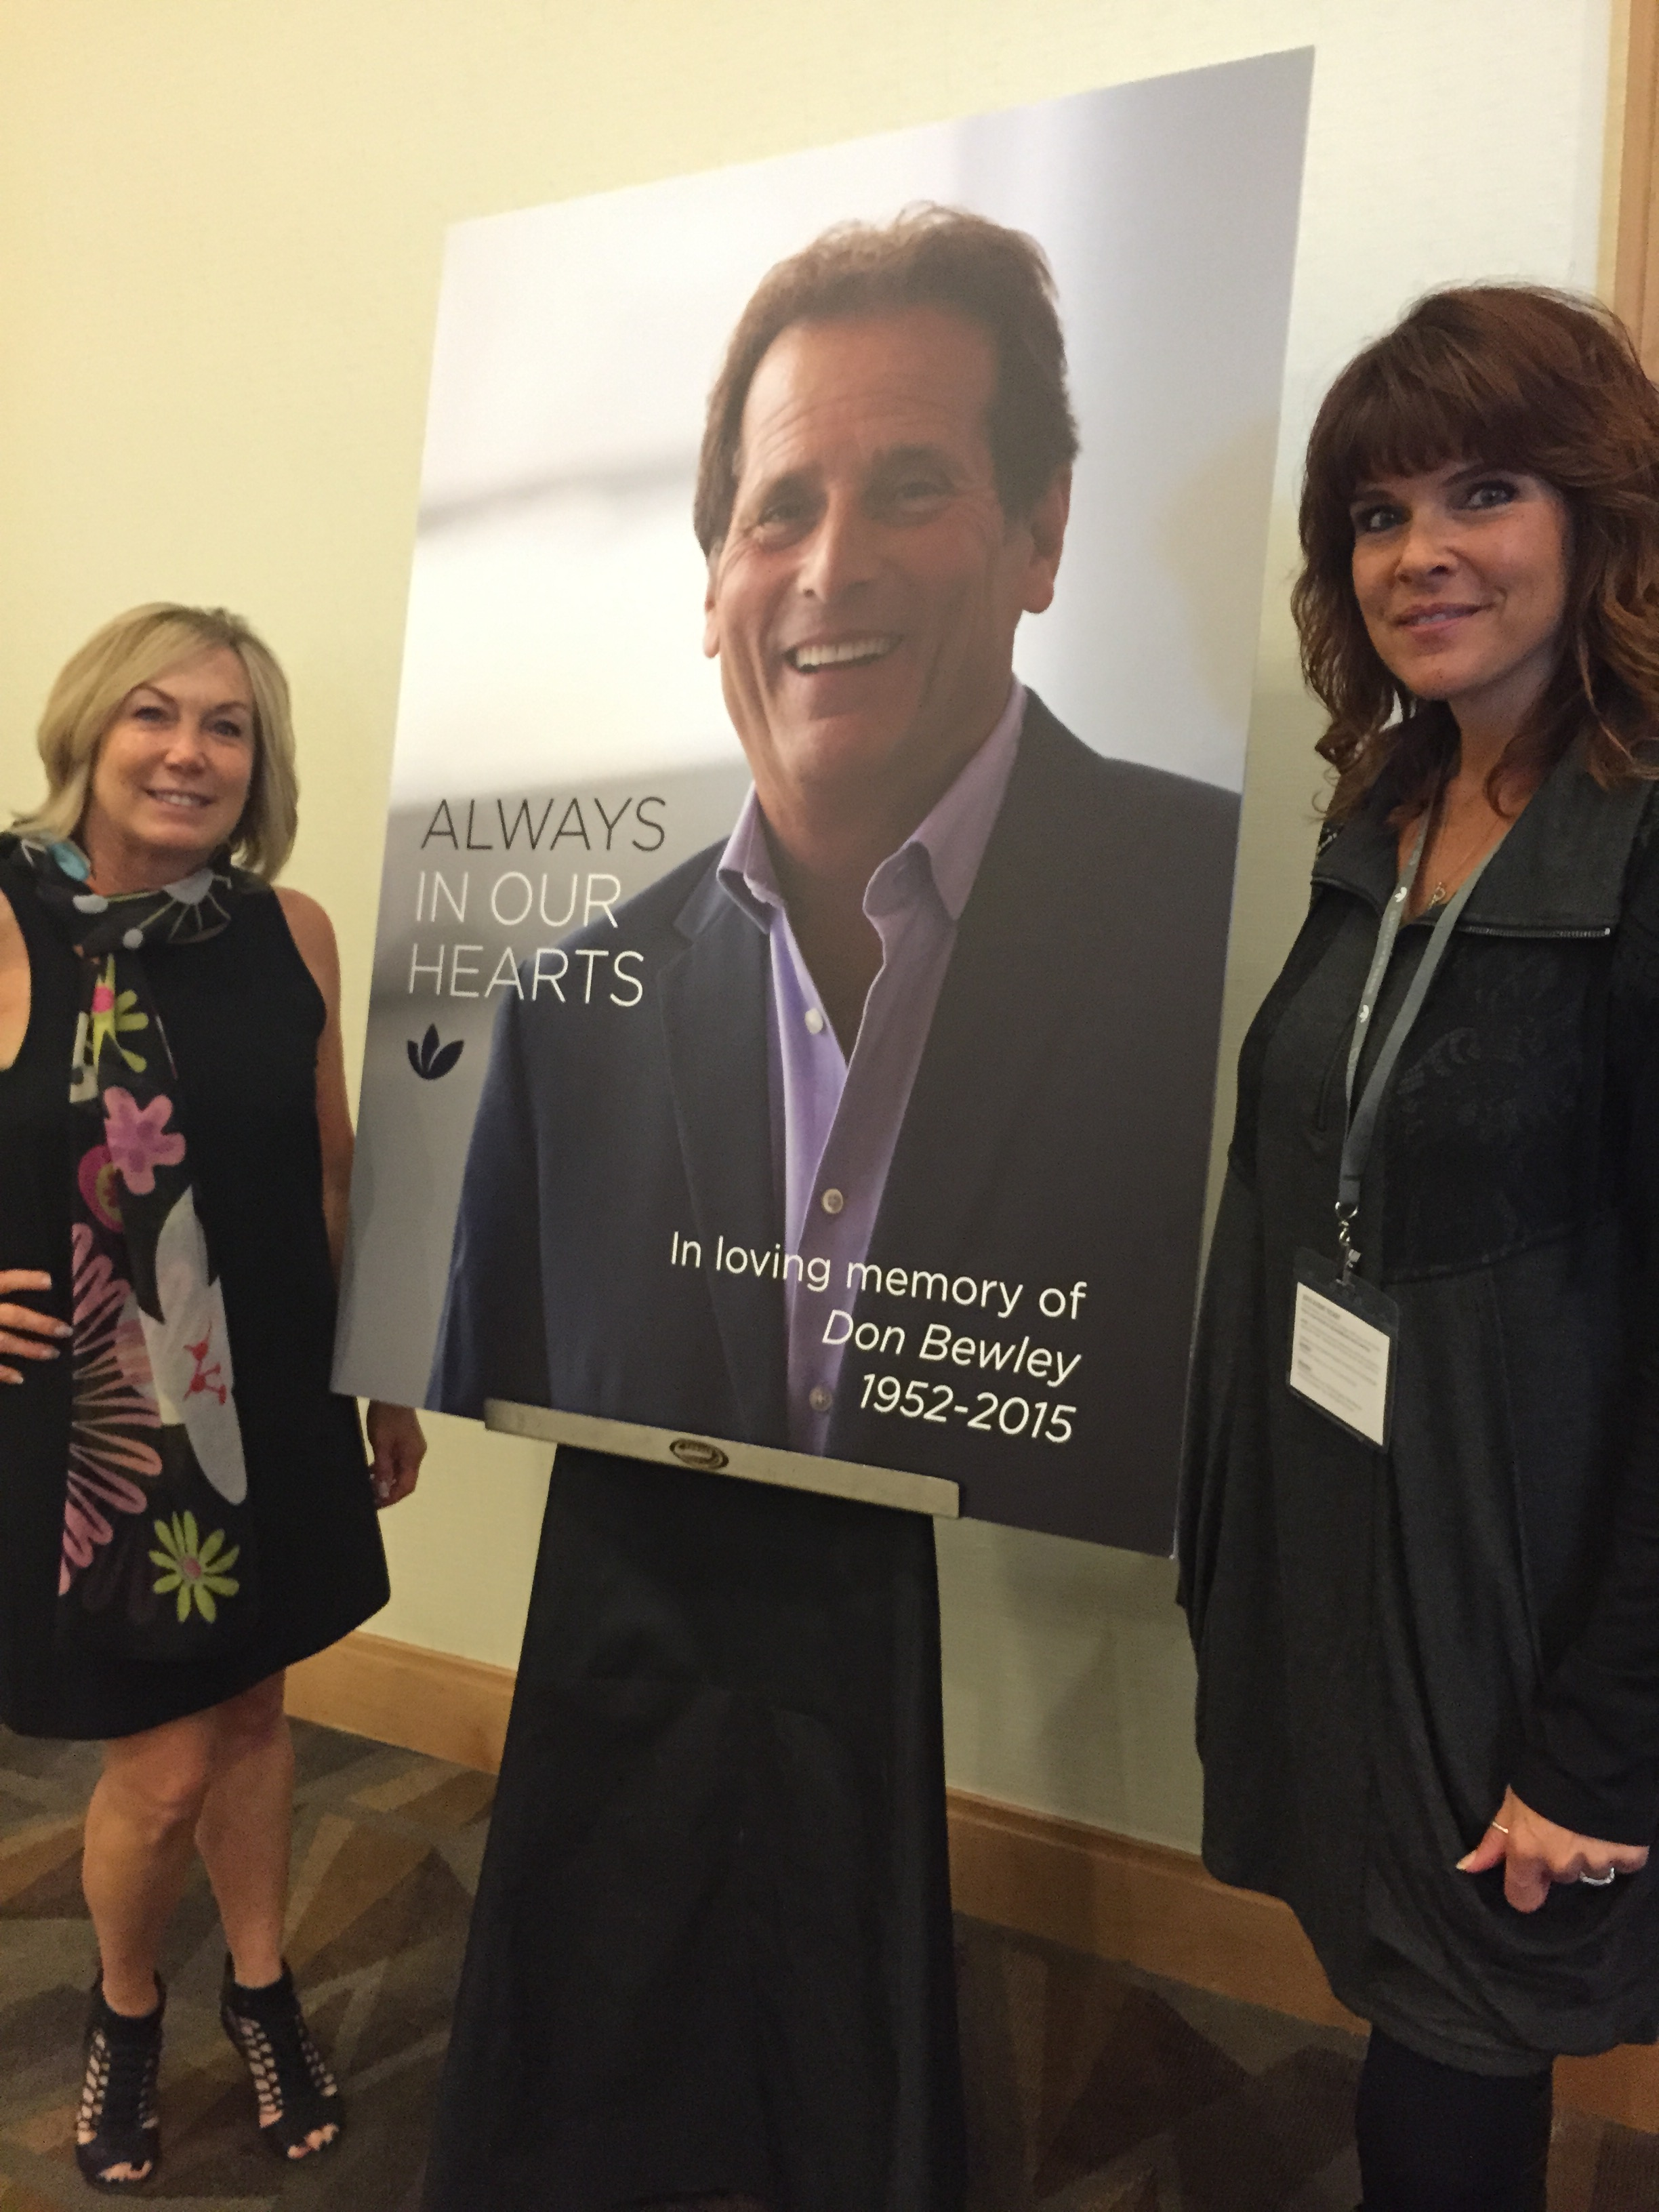 Gayle Fulbright and Connie Kecskes of Headlines The Salon in Encinitas, CA, are Eufora Global Educators and two of Don Bewley's biggest fans.